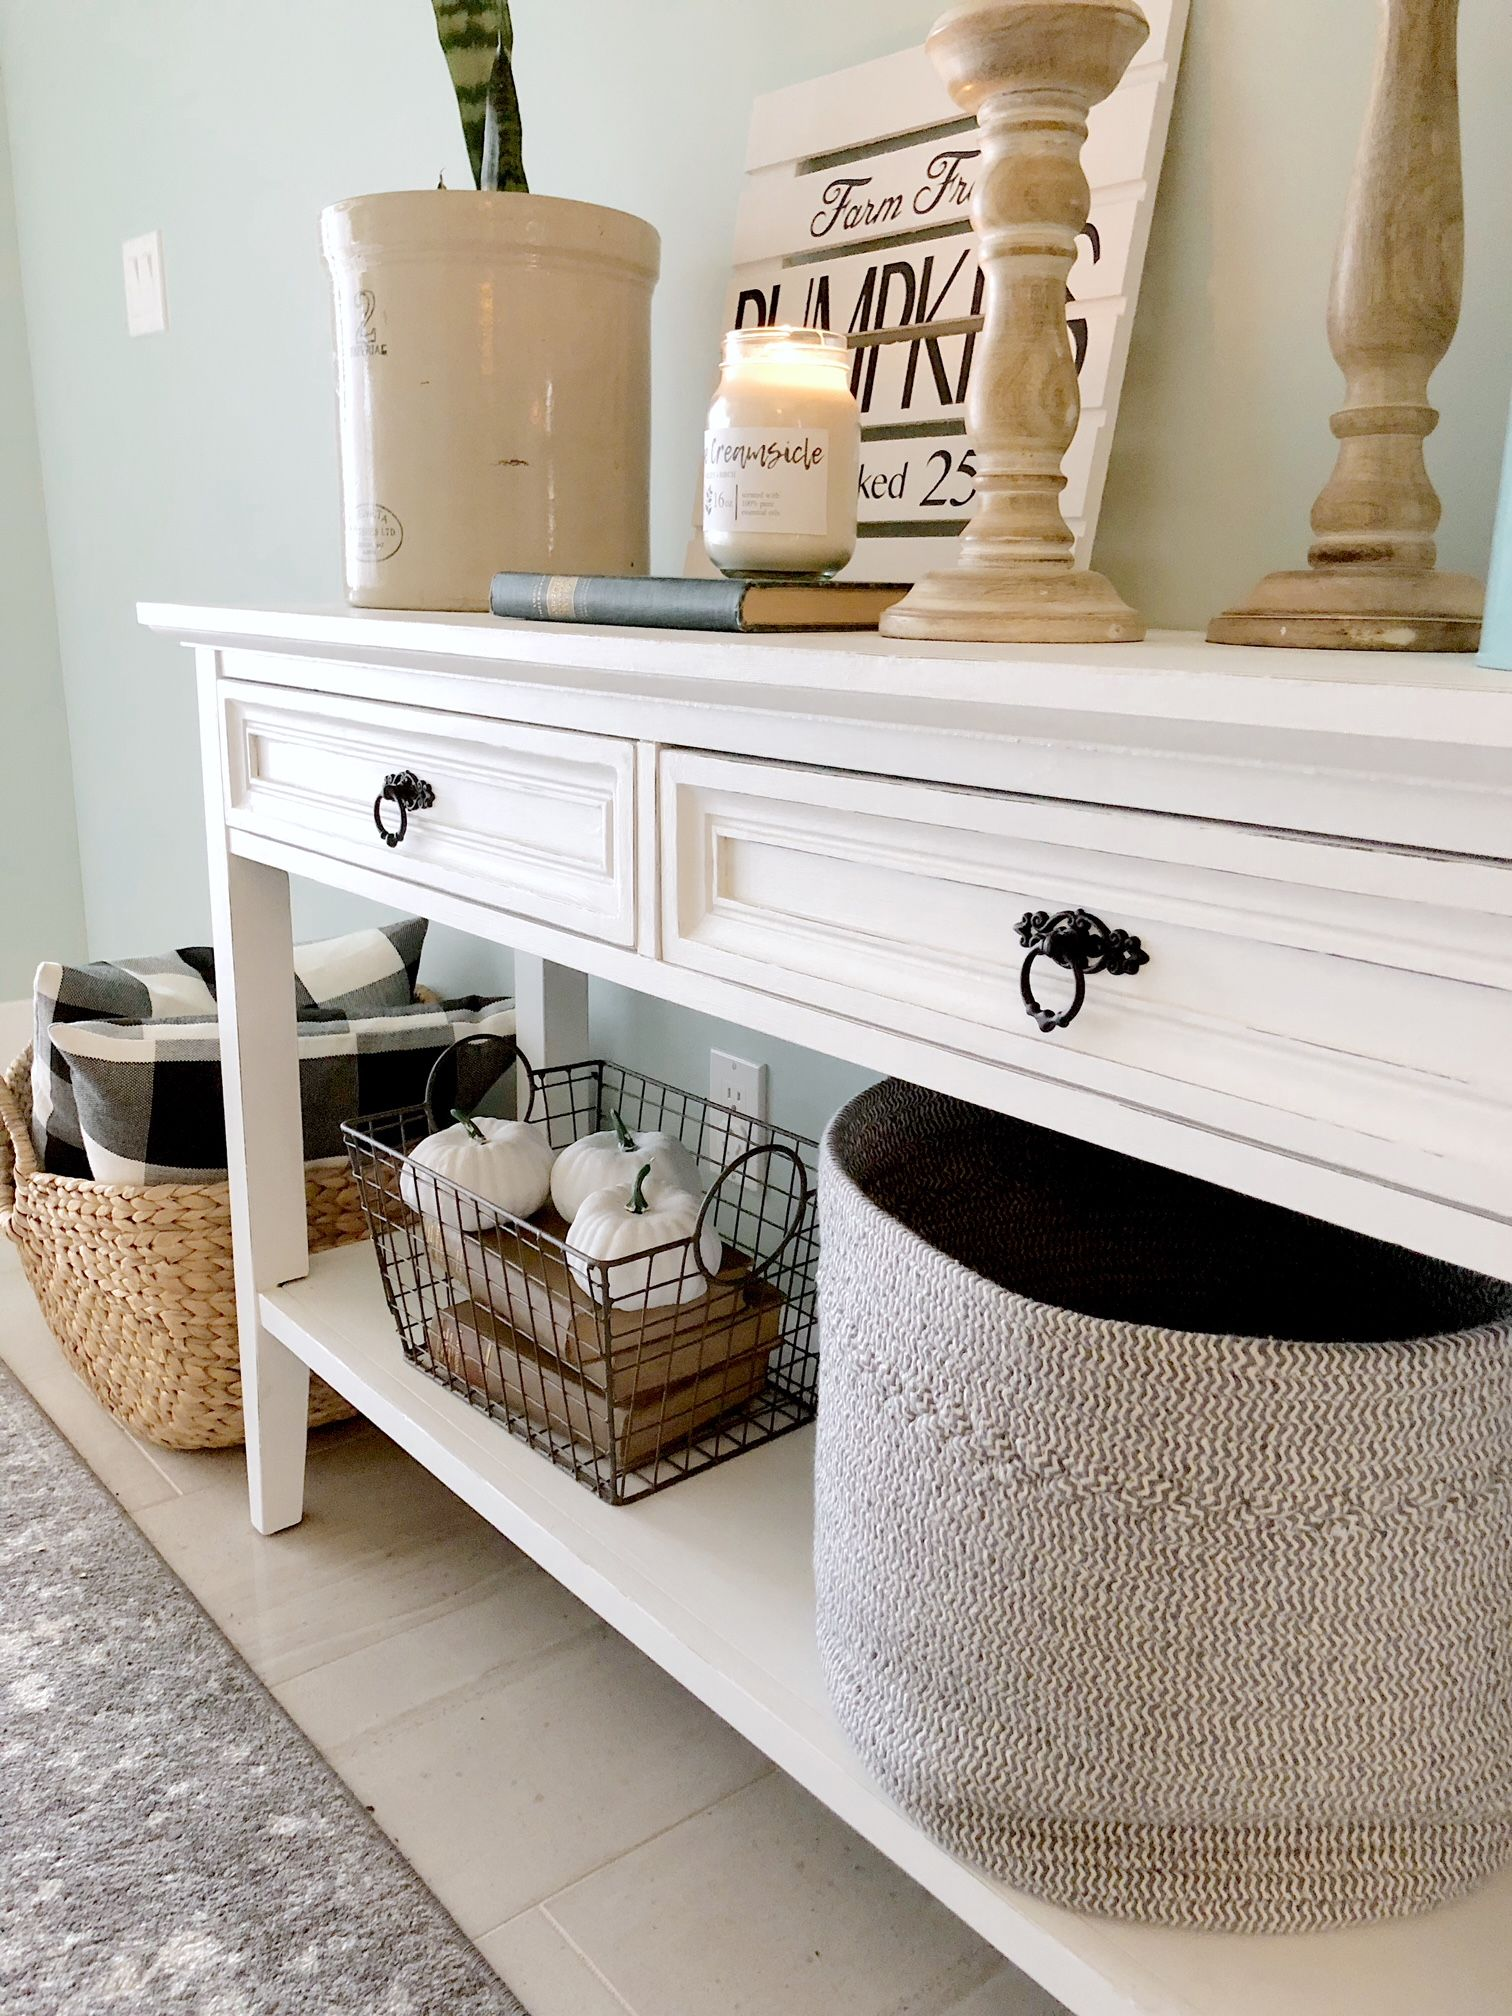 Chalk Painted Console Table Decorated For Fall Valley Birch Chalkpaintedfurniture Chalkpaint Falldecor Consoletable Entryway Front Fall Entryway Decor Traditional Console Tables Decor